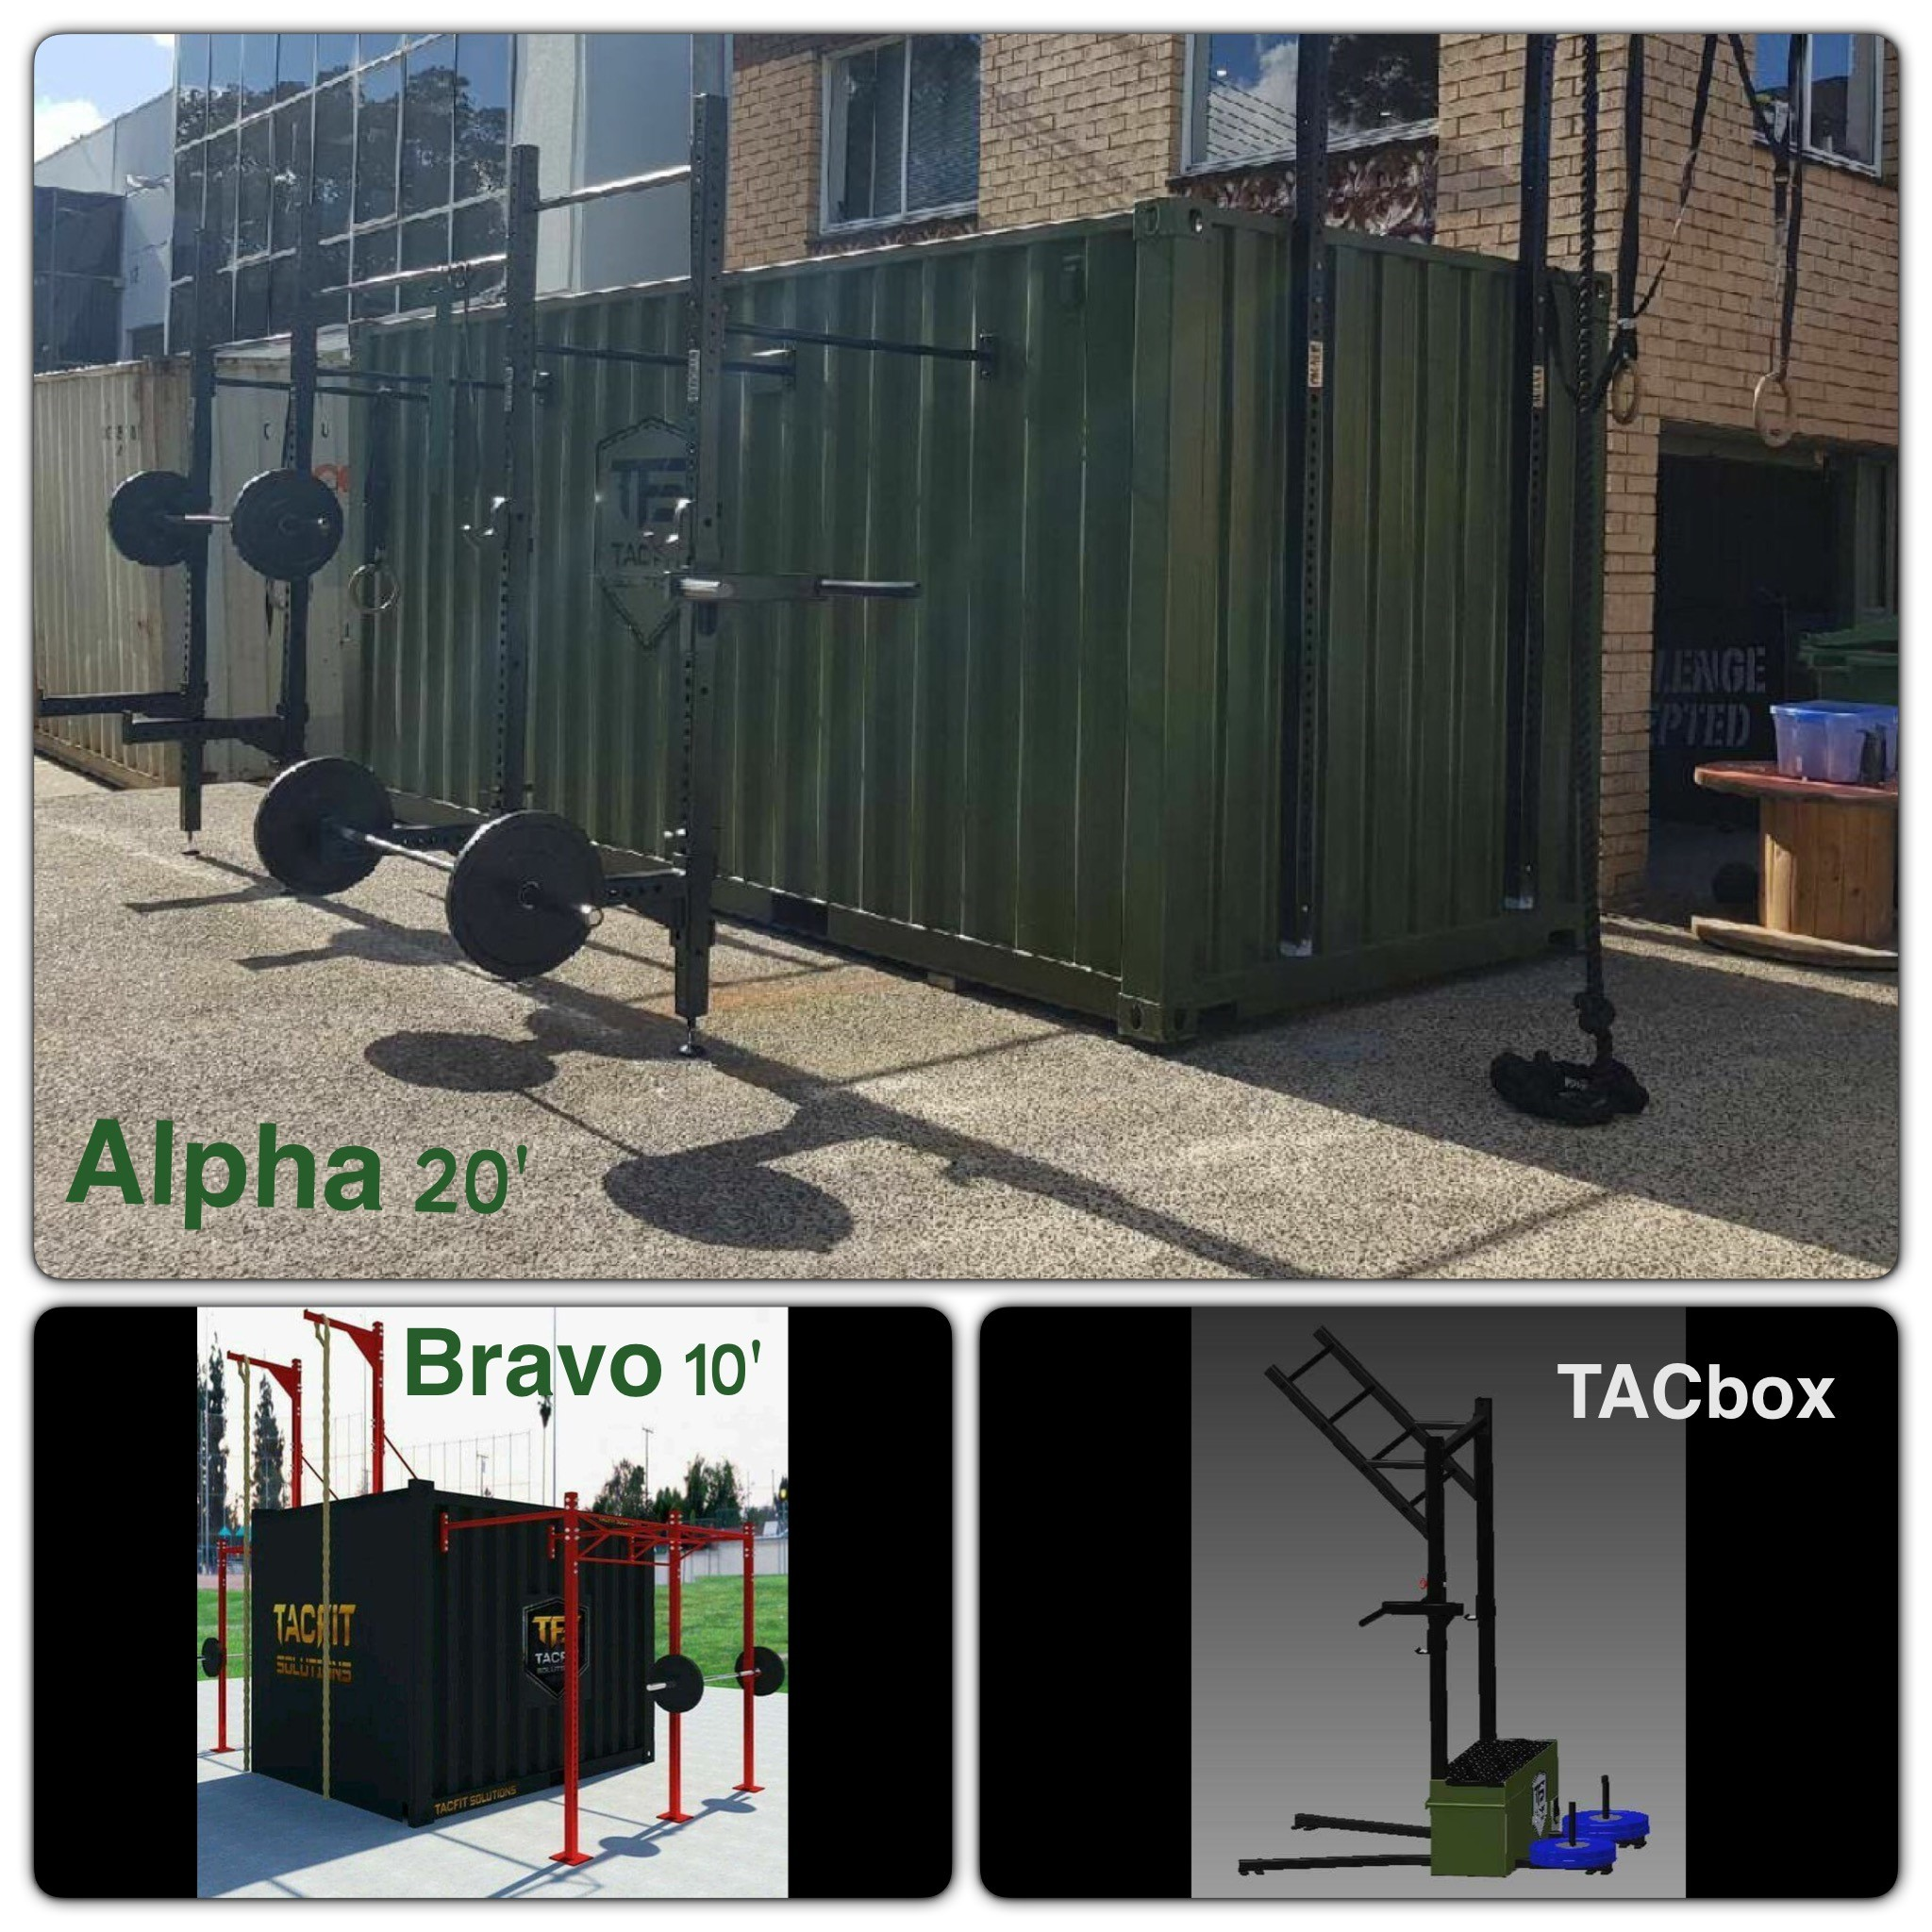 TacFit Solutions - Deployable Strength Training Facilities (DSTF)(As heard on 2UE radio with John Stanley Breakfast July 17, 2017)TacFit Solutions was born of a need identified during Leon and Luke's time in the Australian military.They wanted the ability to have a mobile strength and conditioning training facility that can be used outdoors in all weather in almost any location.MYbrainwave helped the TacFit team take the idea from concept to reality, by facilitating detailed planning including go to market strategies, sales and project planning. The MYbrainwave team provide coaching and mentoring and facilitate introductions through our network.